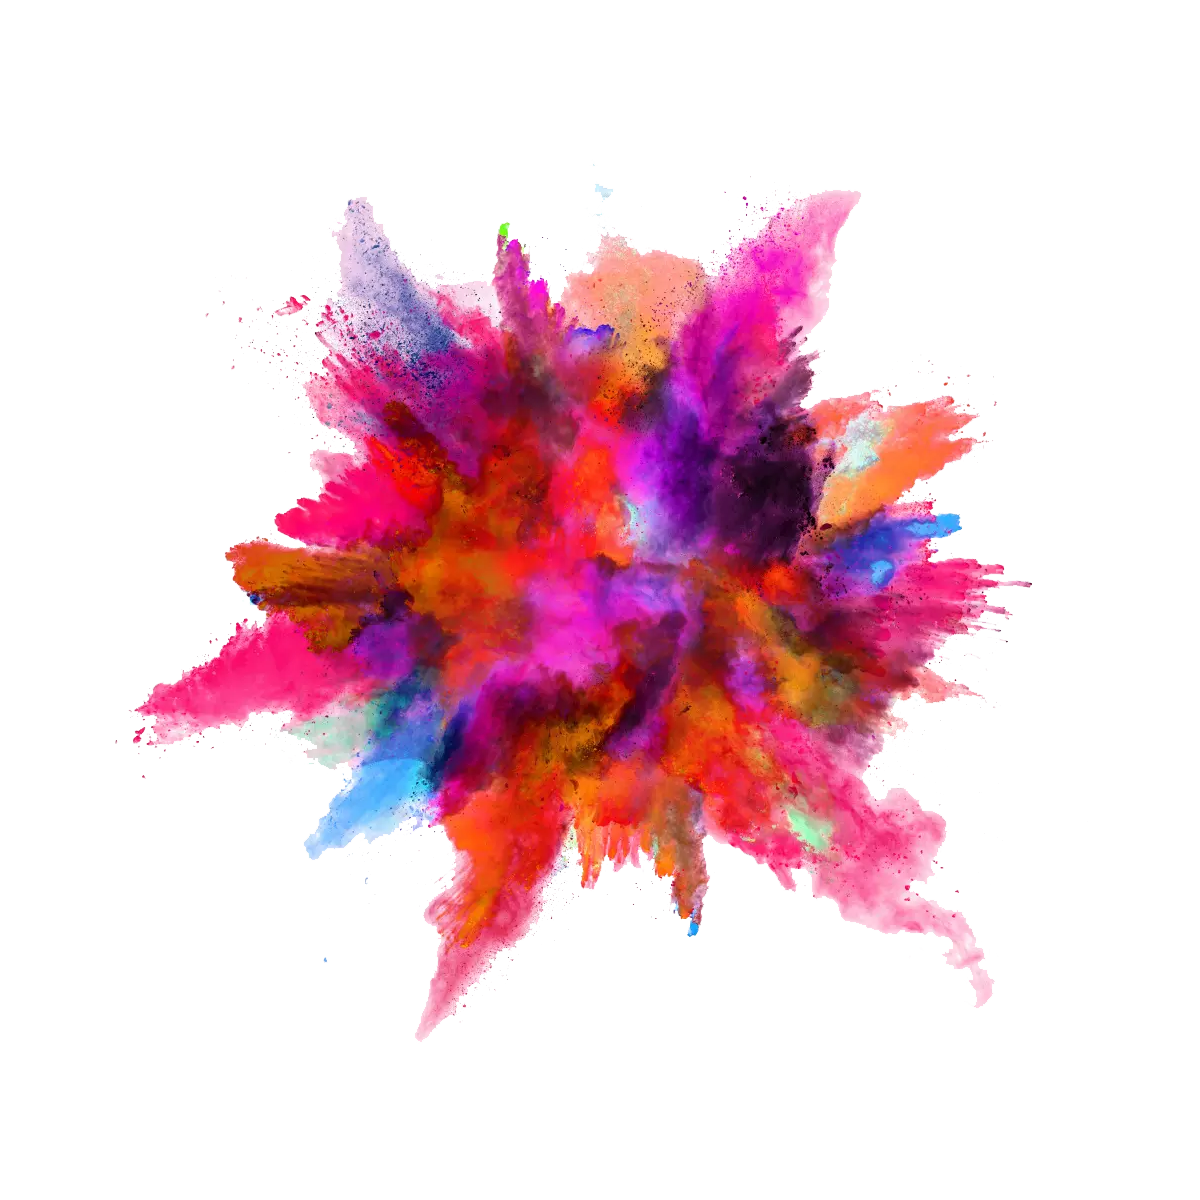 Paint explosion png. Color powder image purepng